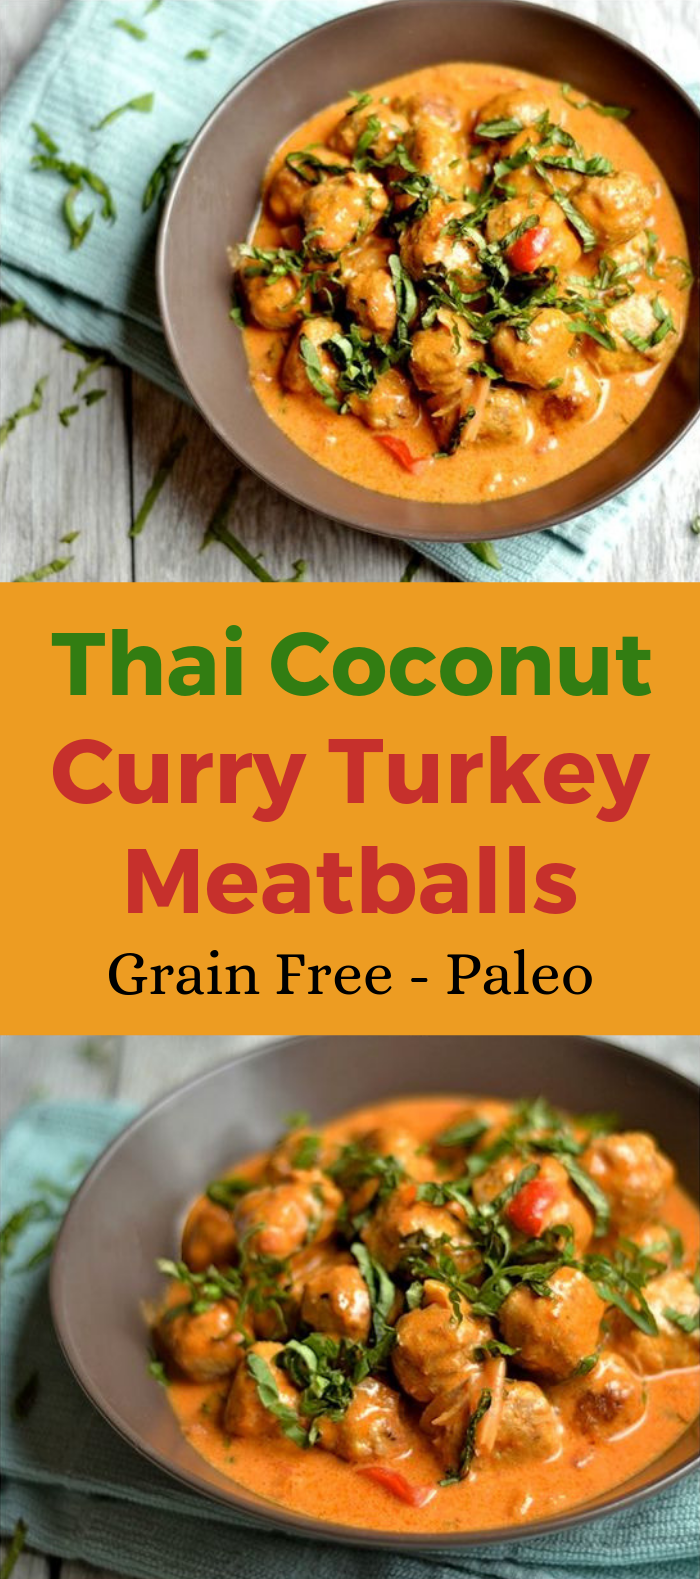 THAI COCONUT CURRY TURKEY MEATBALLS #Meatballs #HealthyRecipe